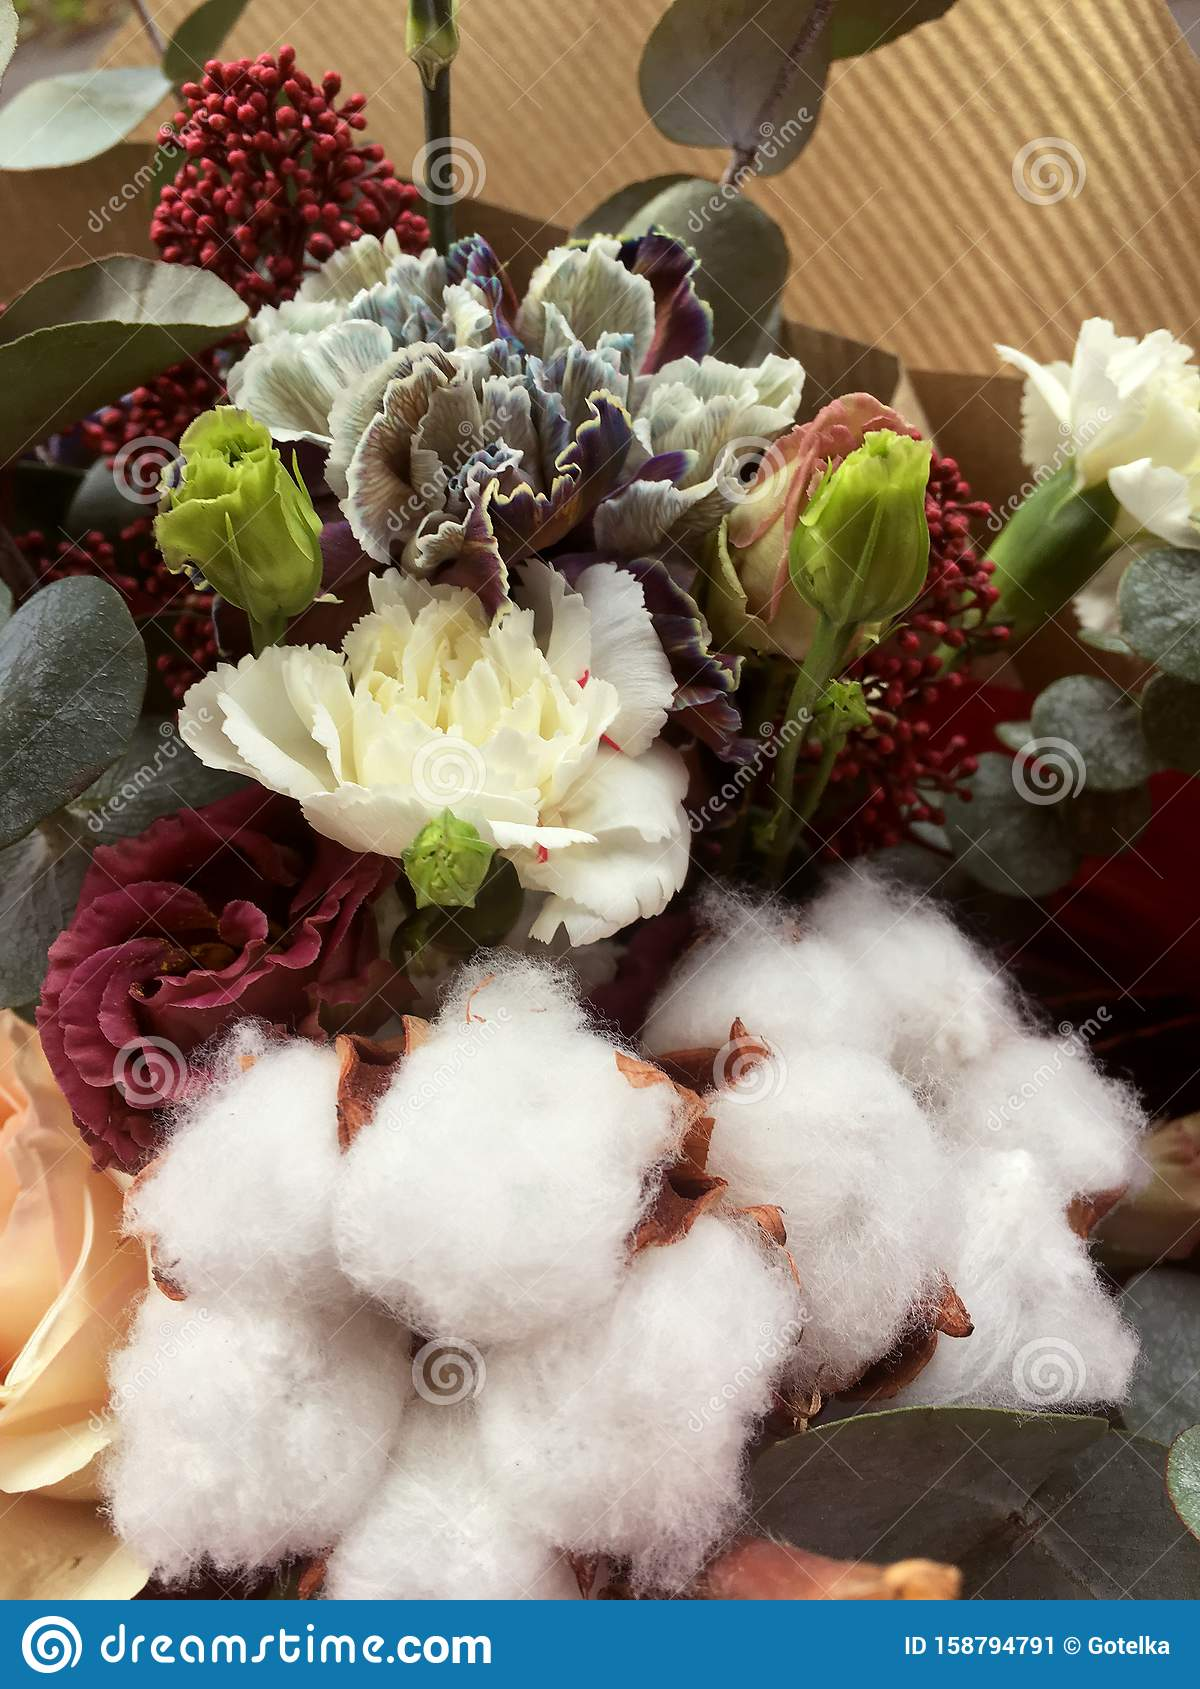 Christmas Winter Bouquet Of Fresh Flower And White Cotton A Bouquet Of Fresh Roses Eucalyptus Green Fir Branches Stock Image Image Of Isolated Branch 158794791